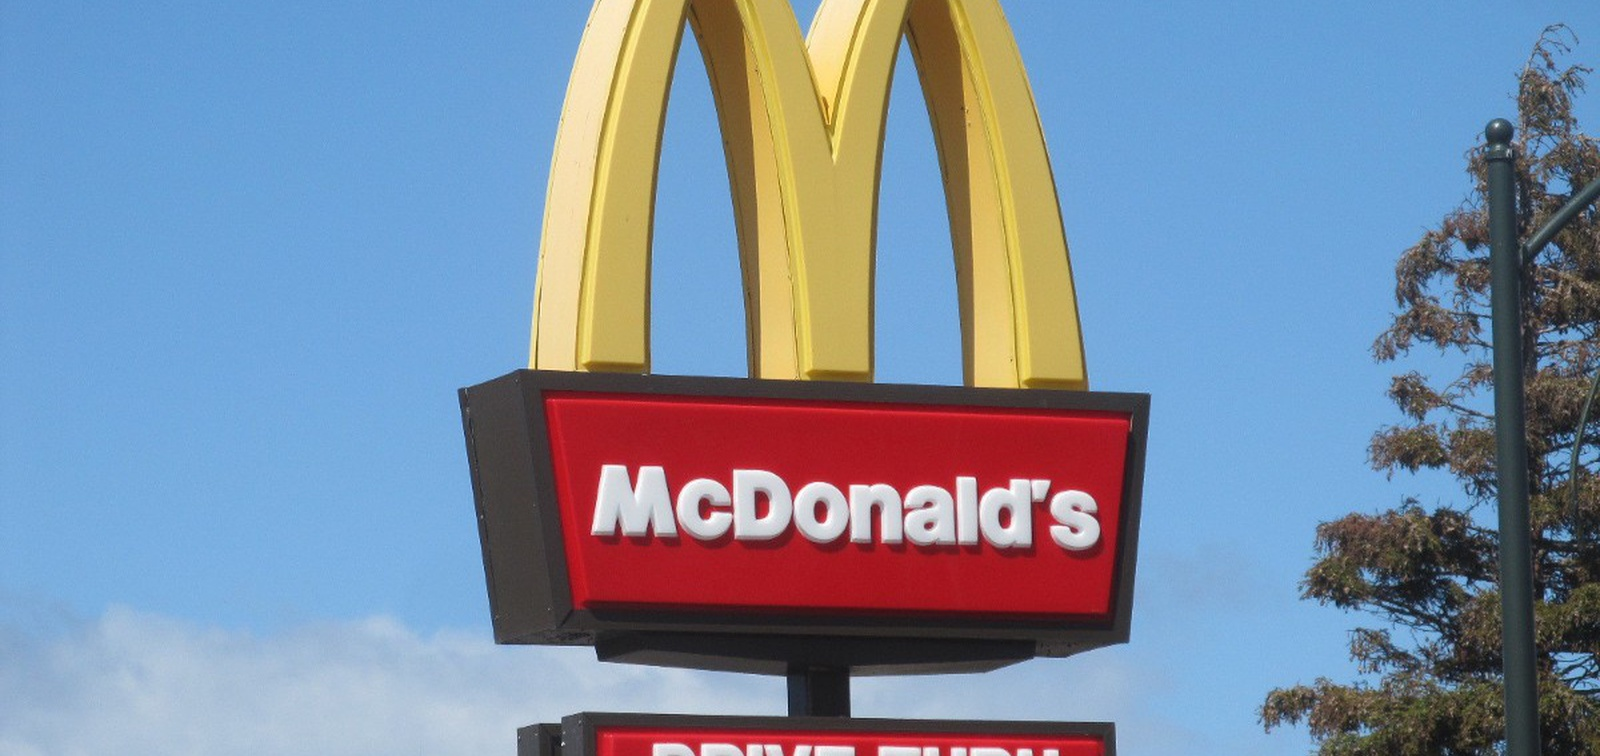 McDonald's reopening requirements saddle operators with more costs